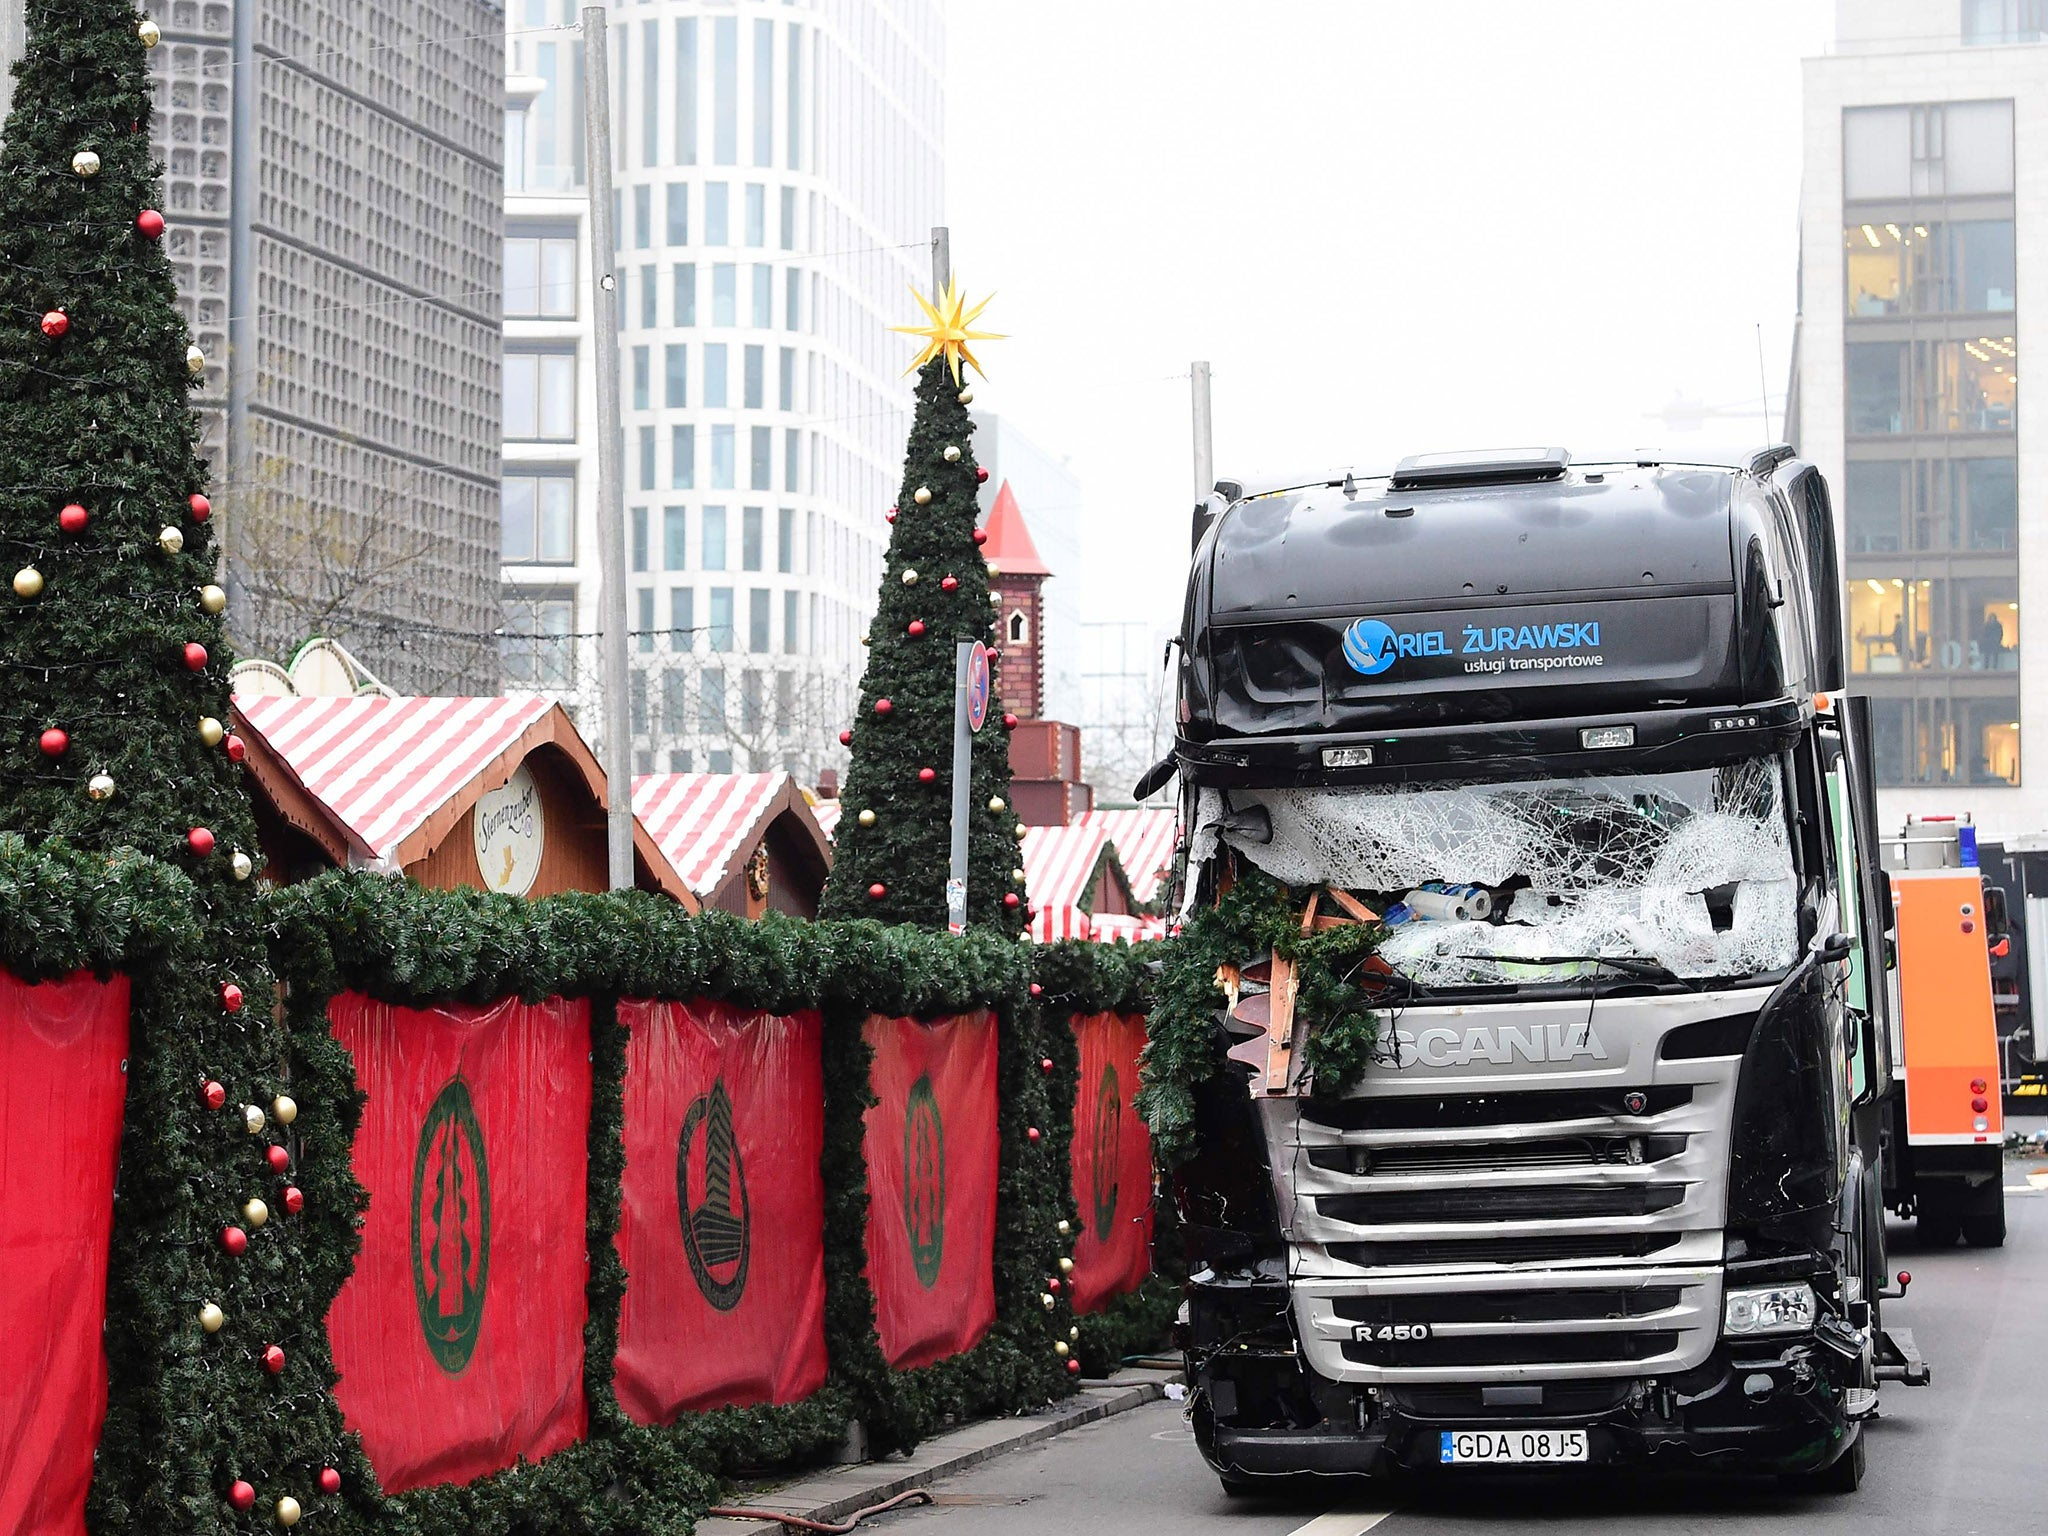 Berlin Attack Tunisian Man Freed After Being Investigated